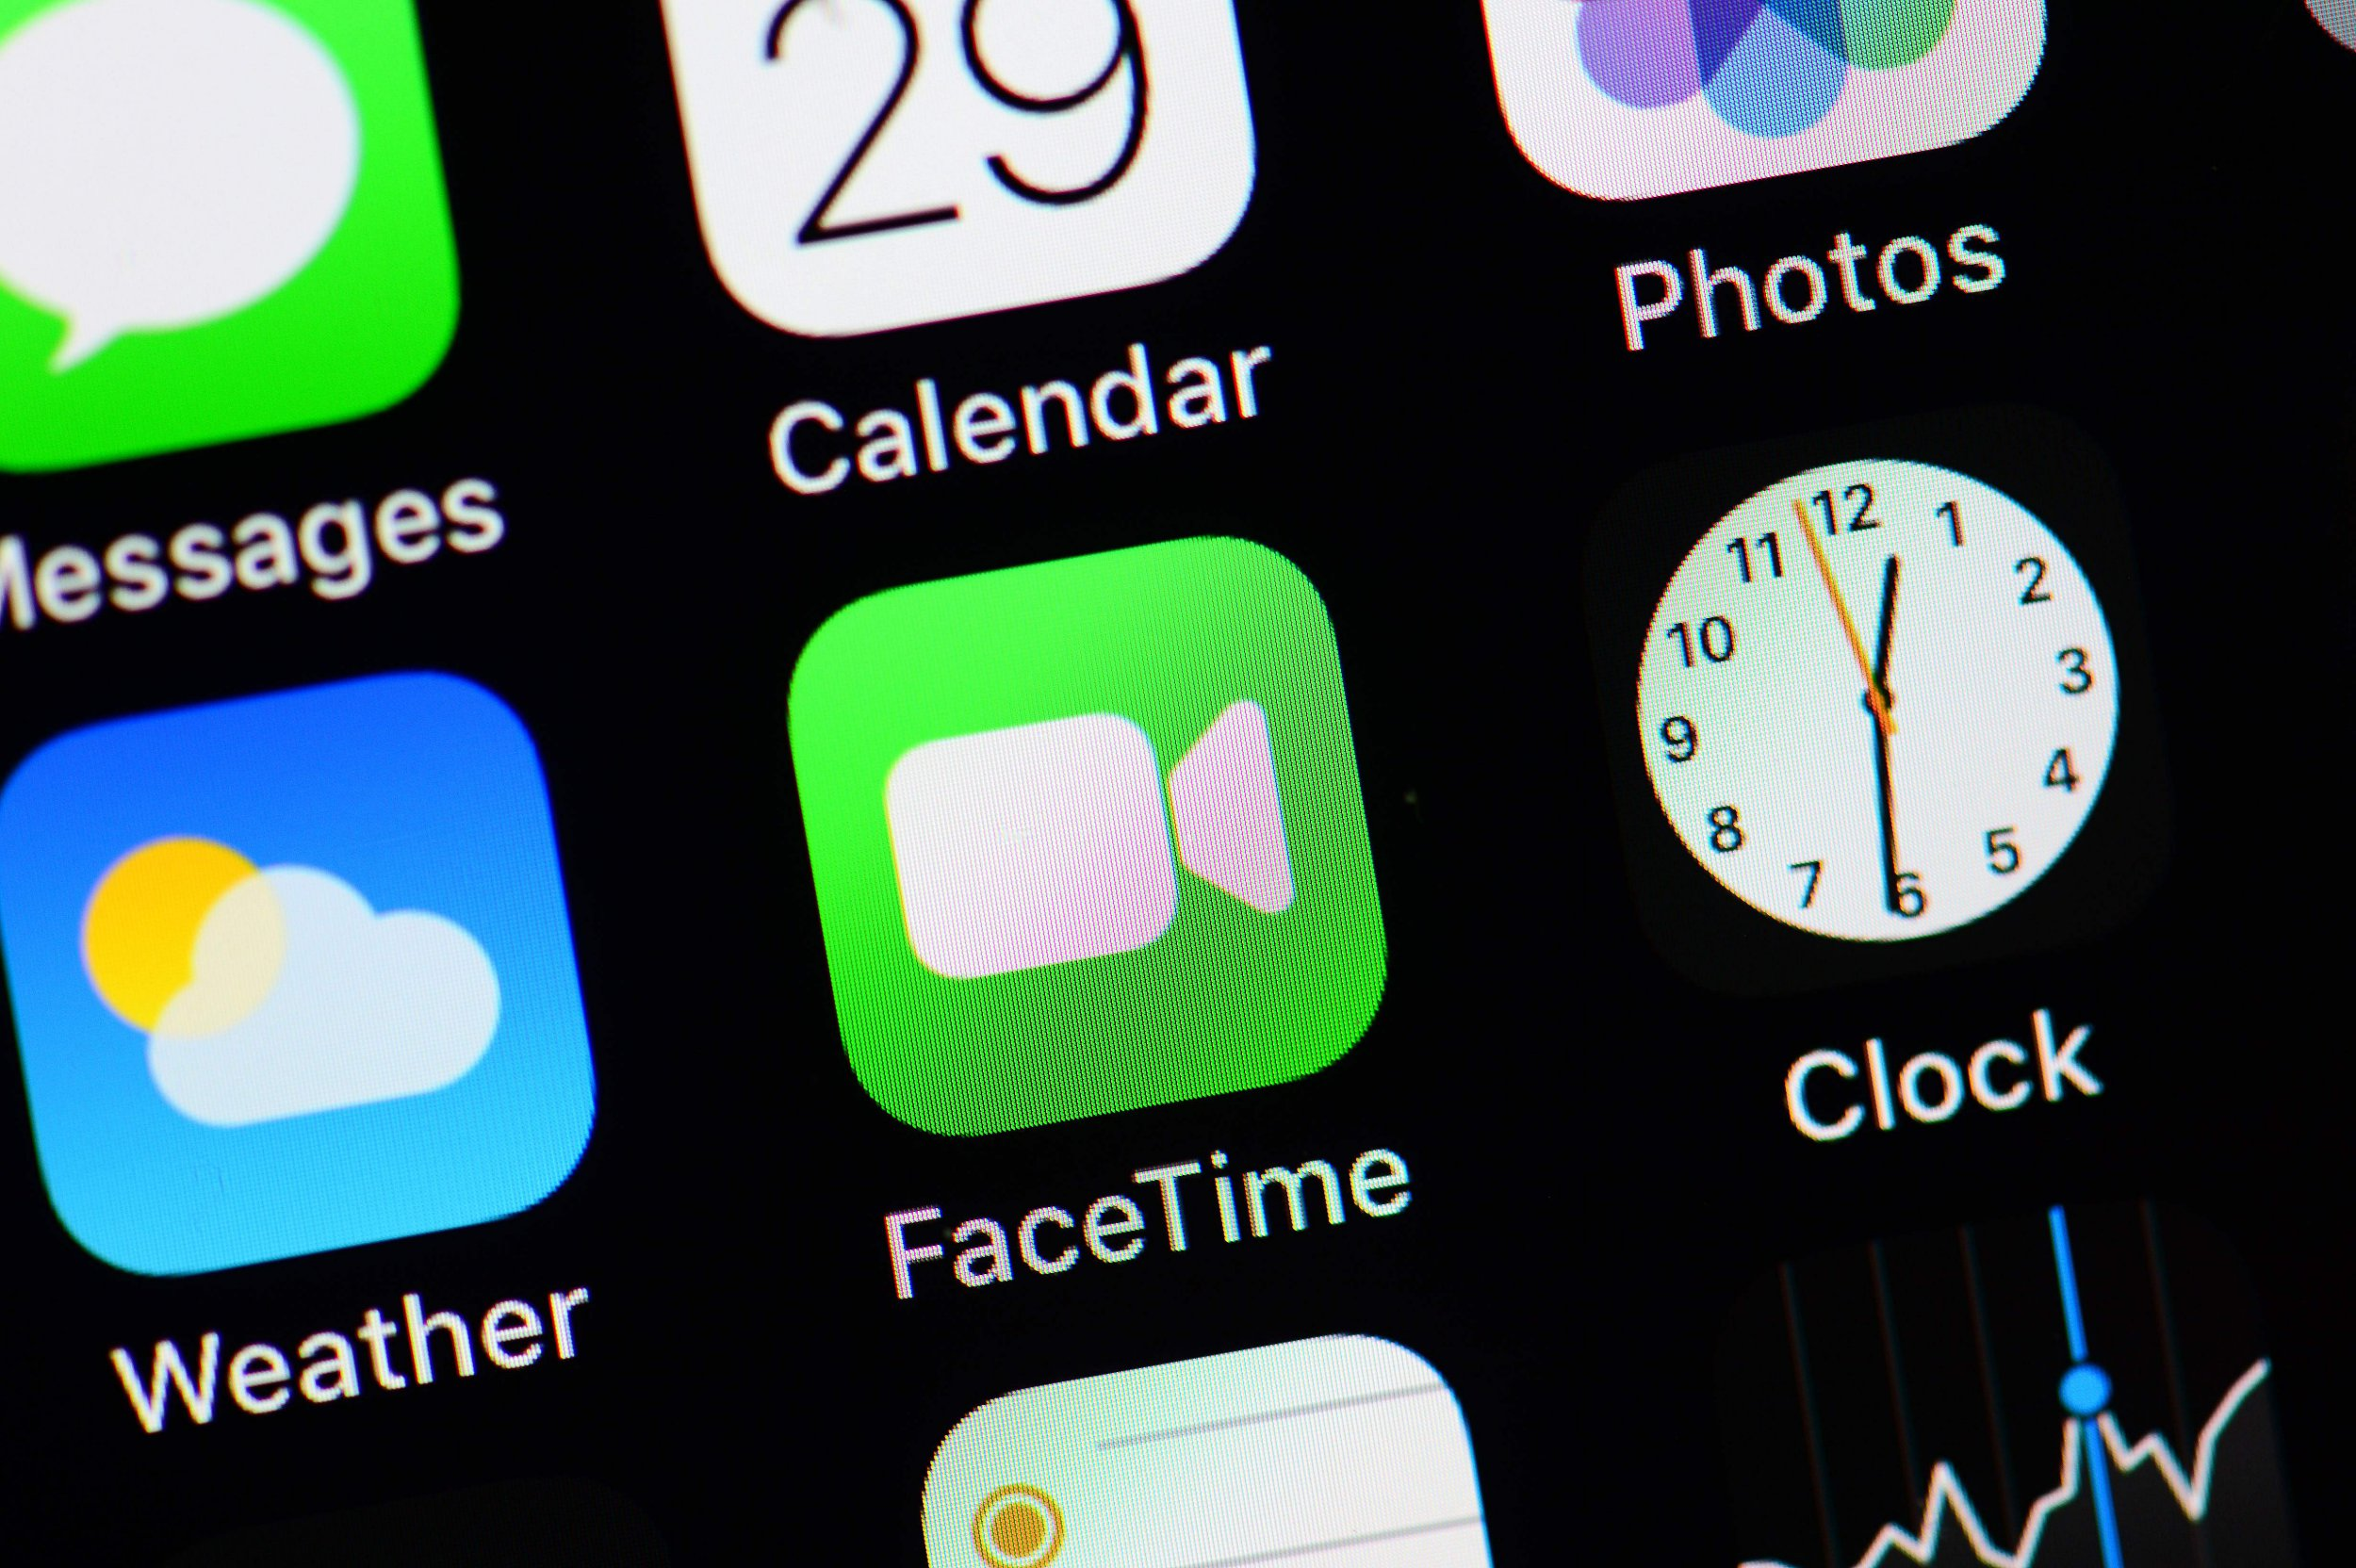 Update your iPhone now to fix the FaceTime security flaw